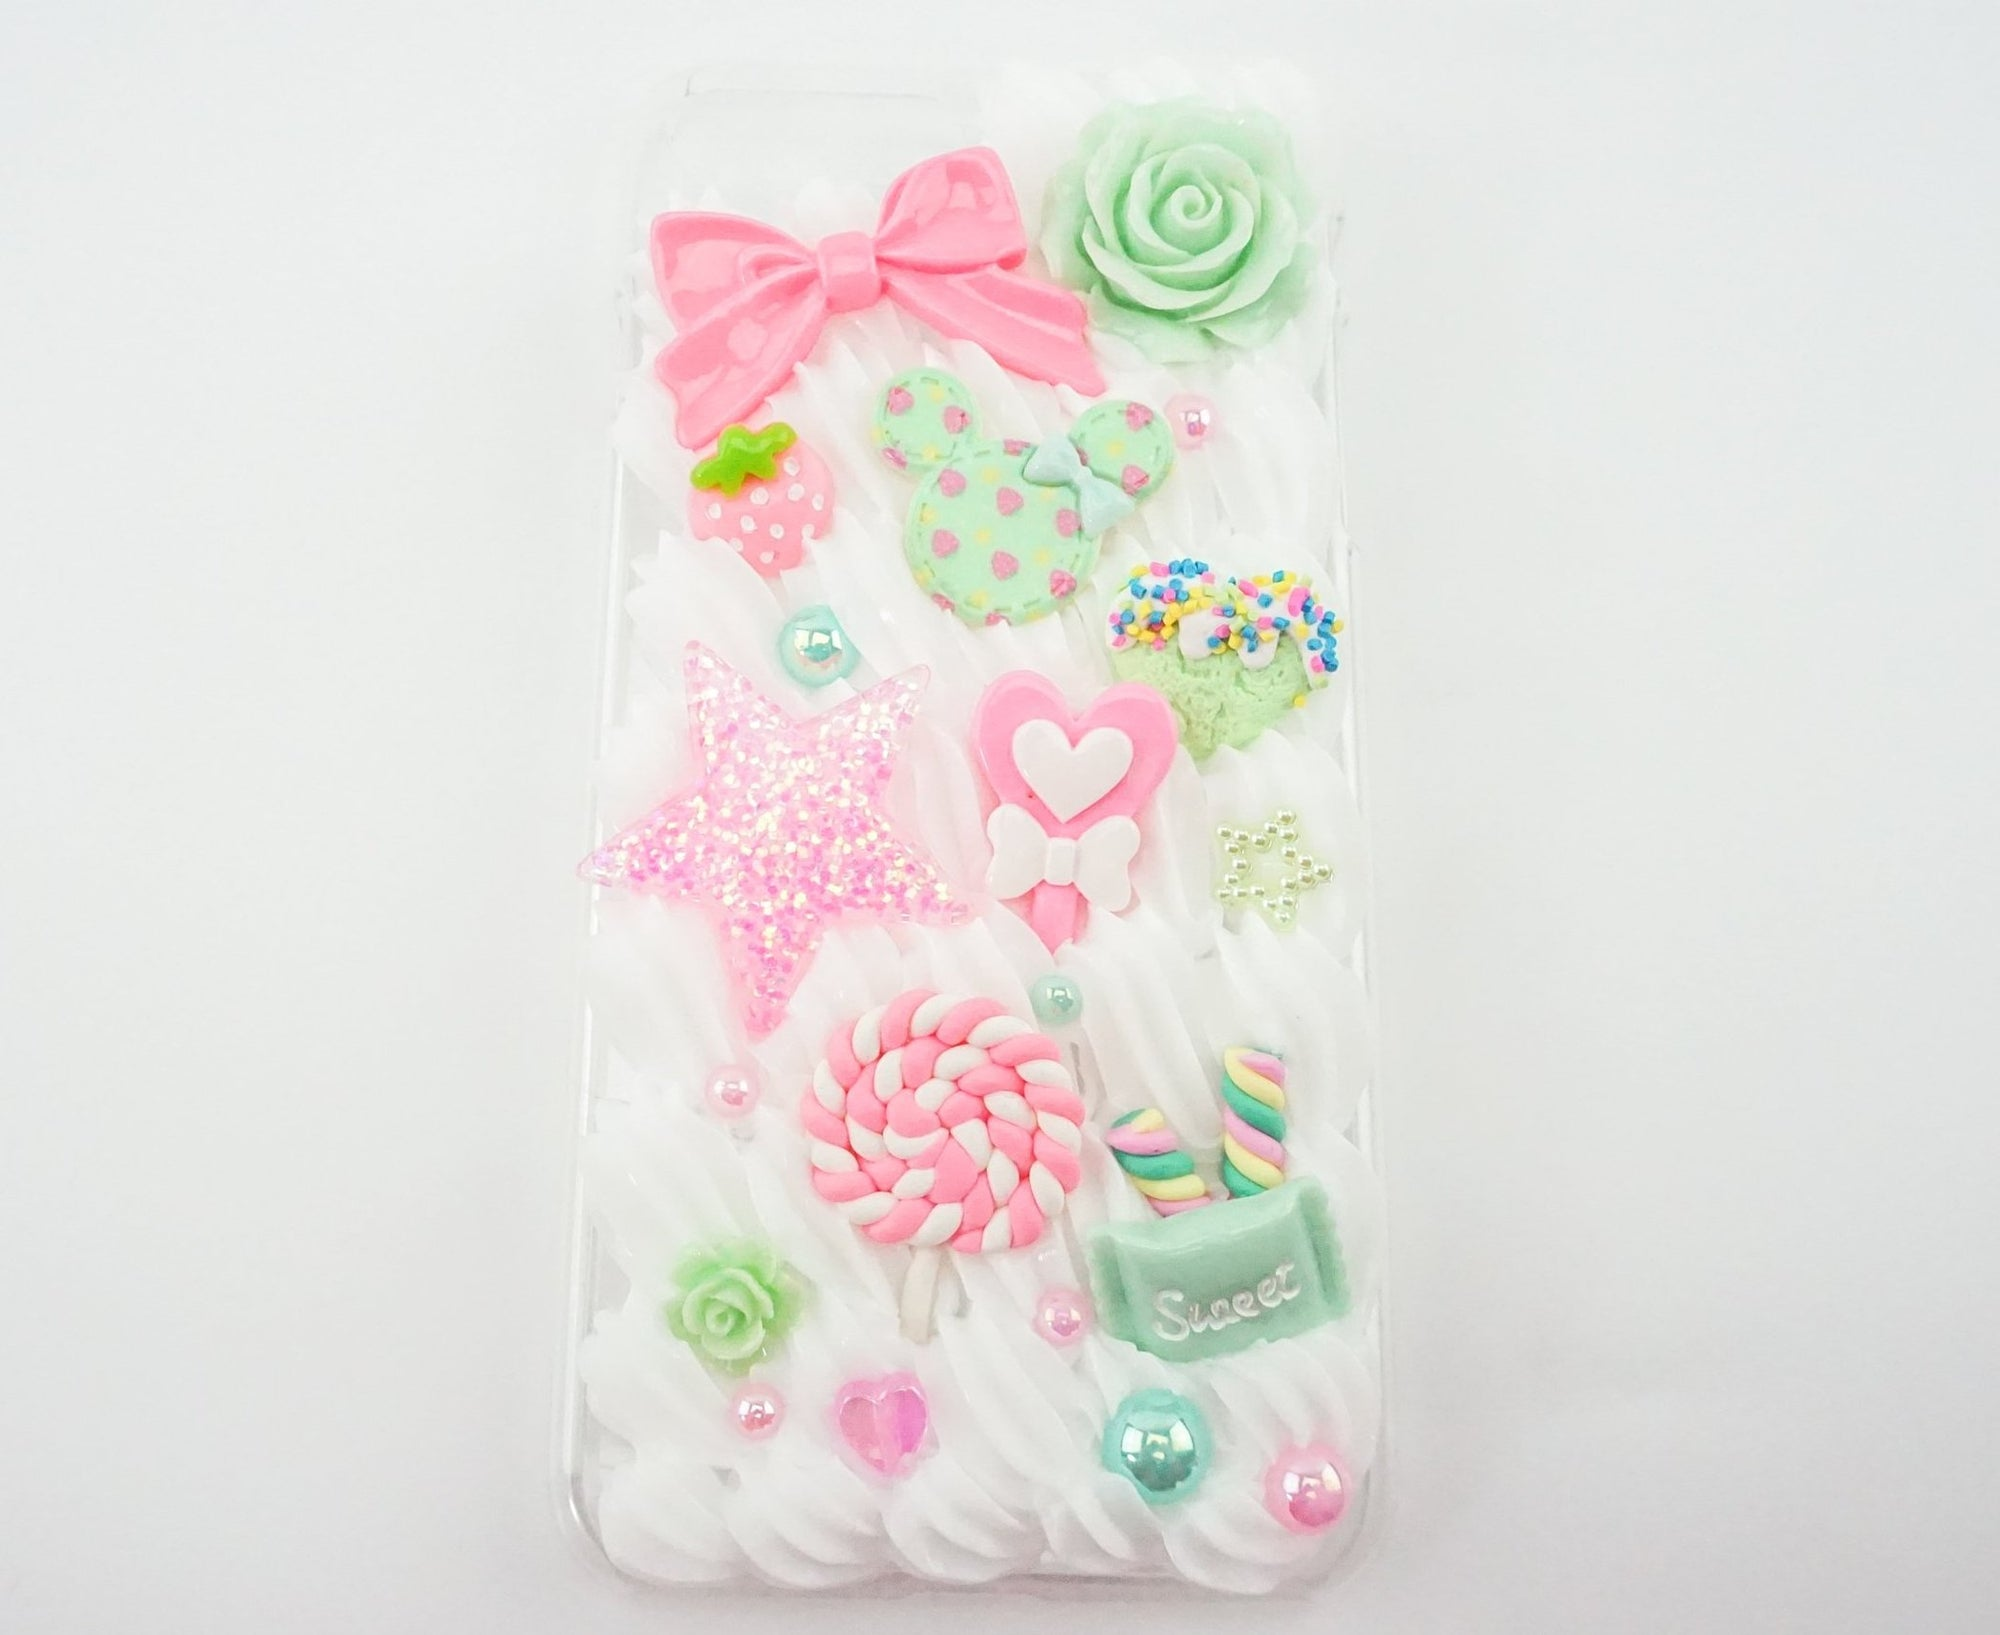 promo code d6870 69e2c Mint & Pink Candy Inspired Iphone 7 Plus Decoden Case